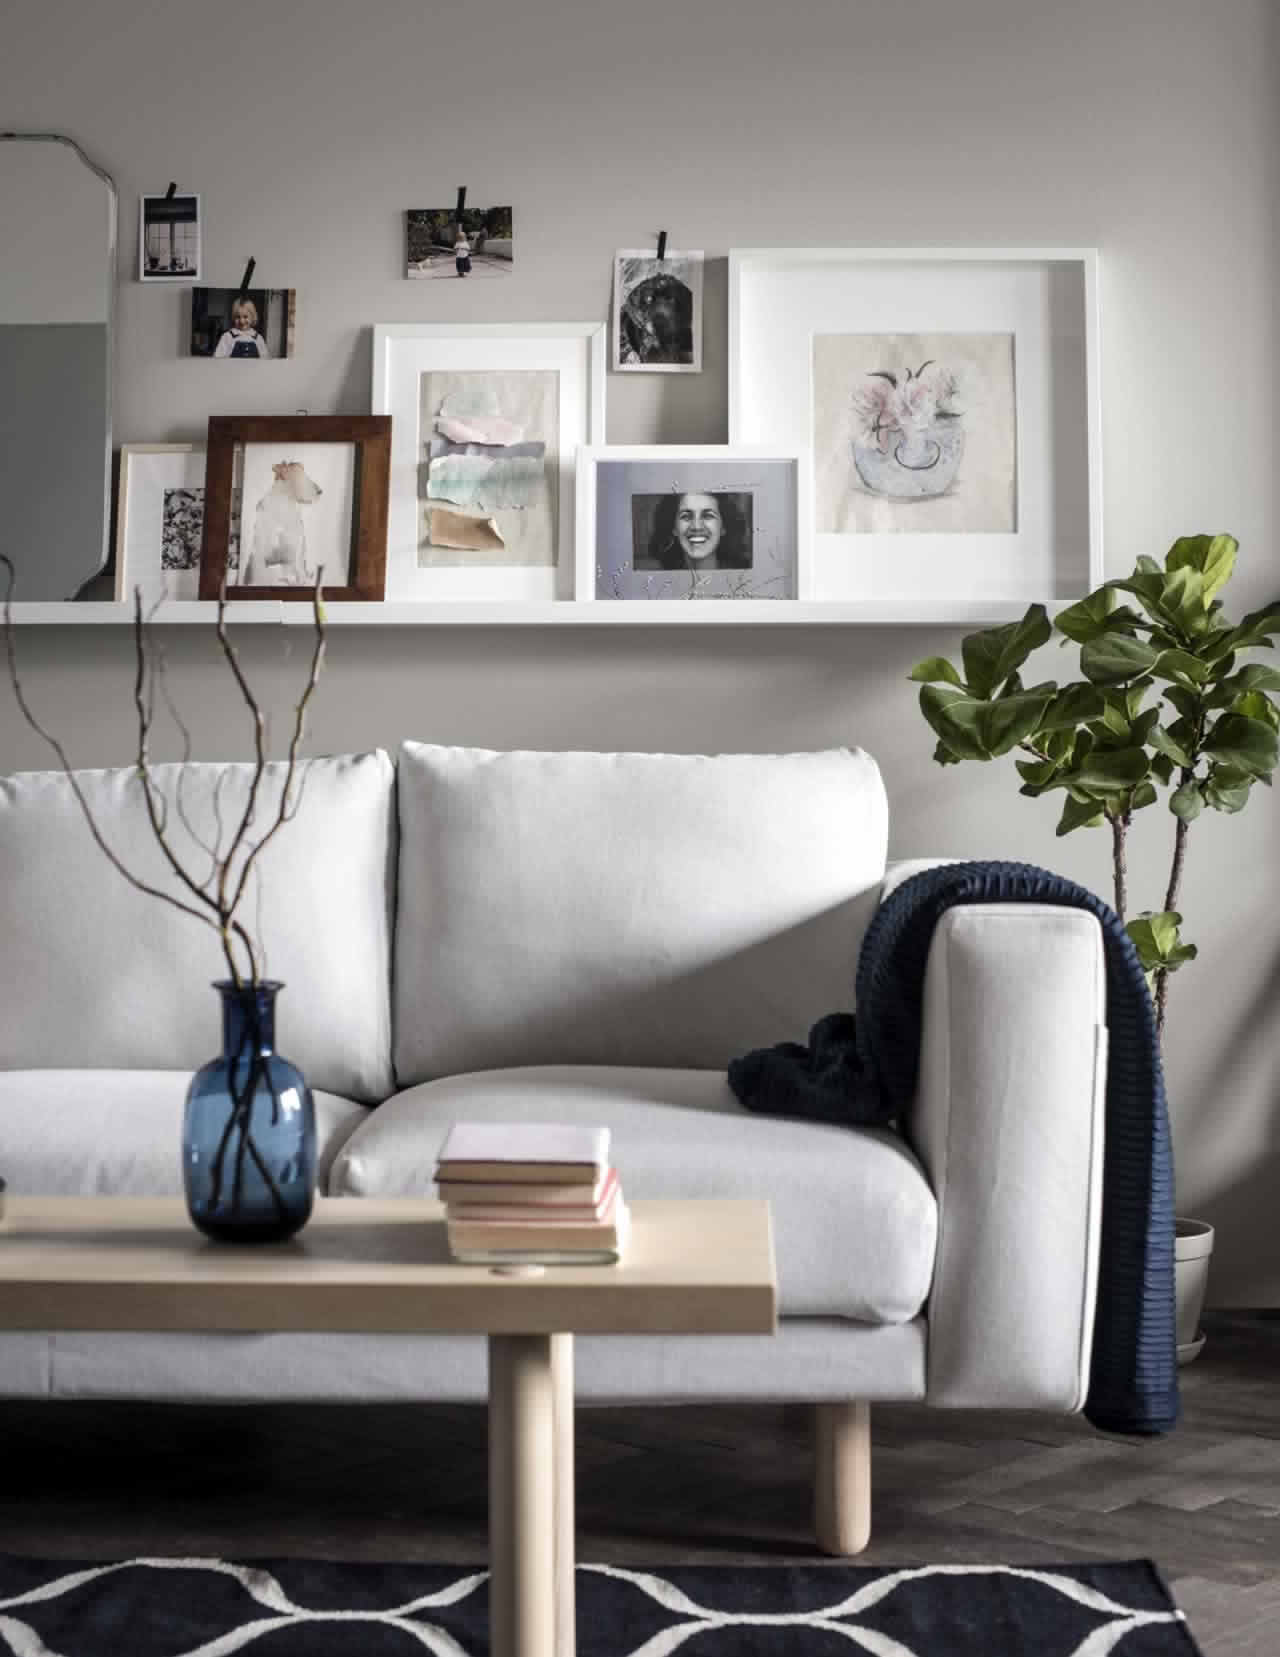 IKEA Ideas - A few smart tips to personalise a rental home